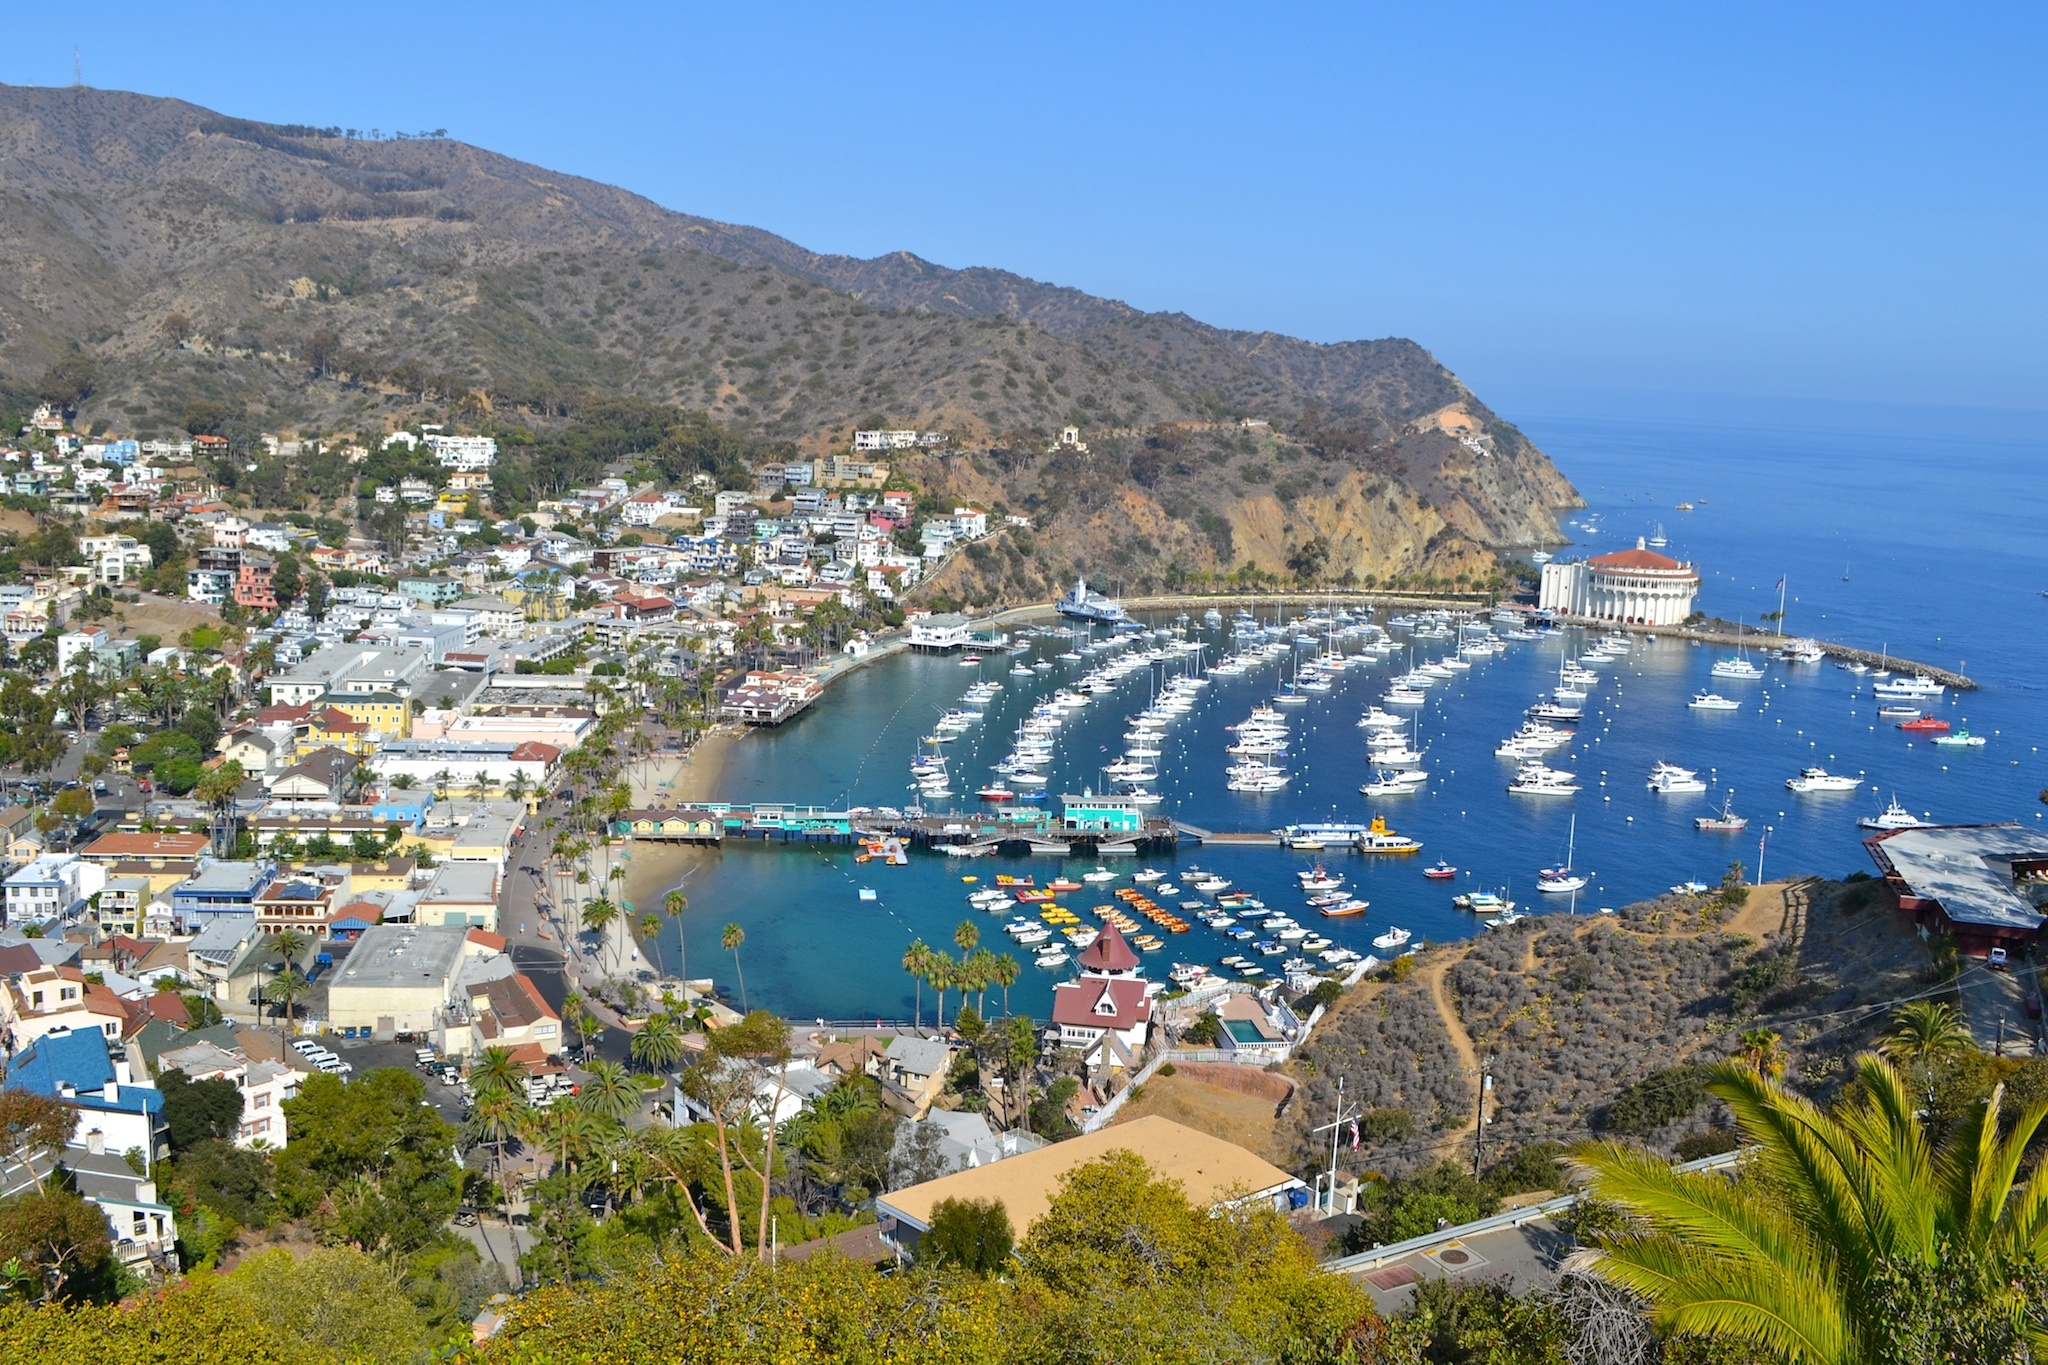 Take a day trip to Catalina